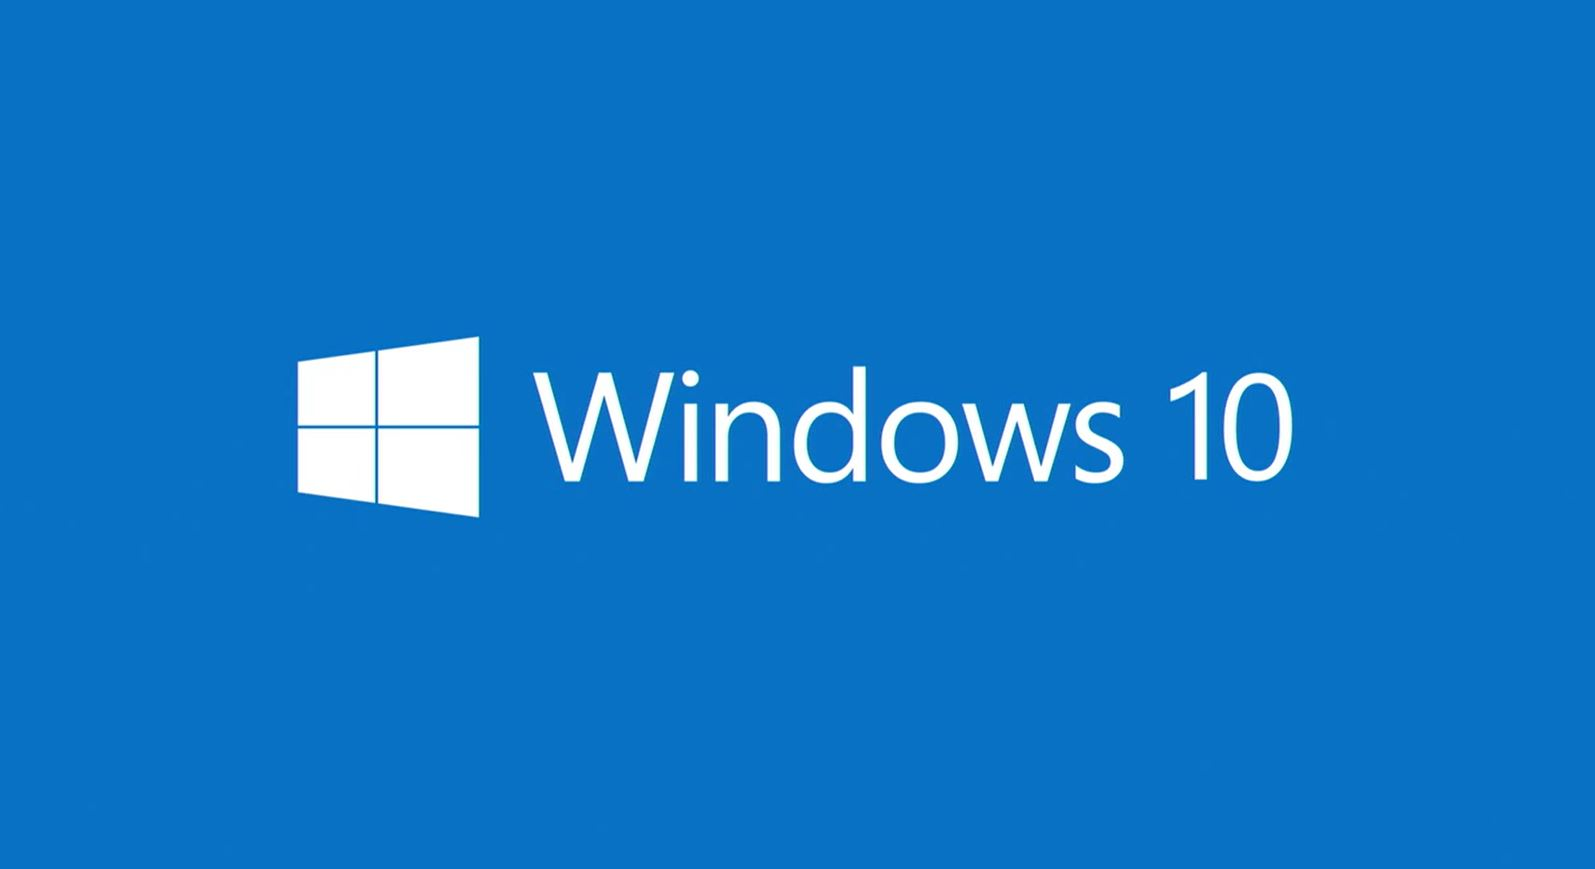 Quebras de performance no PC com Windows 10? Duas dicas importantes.